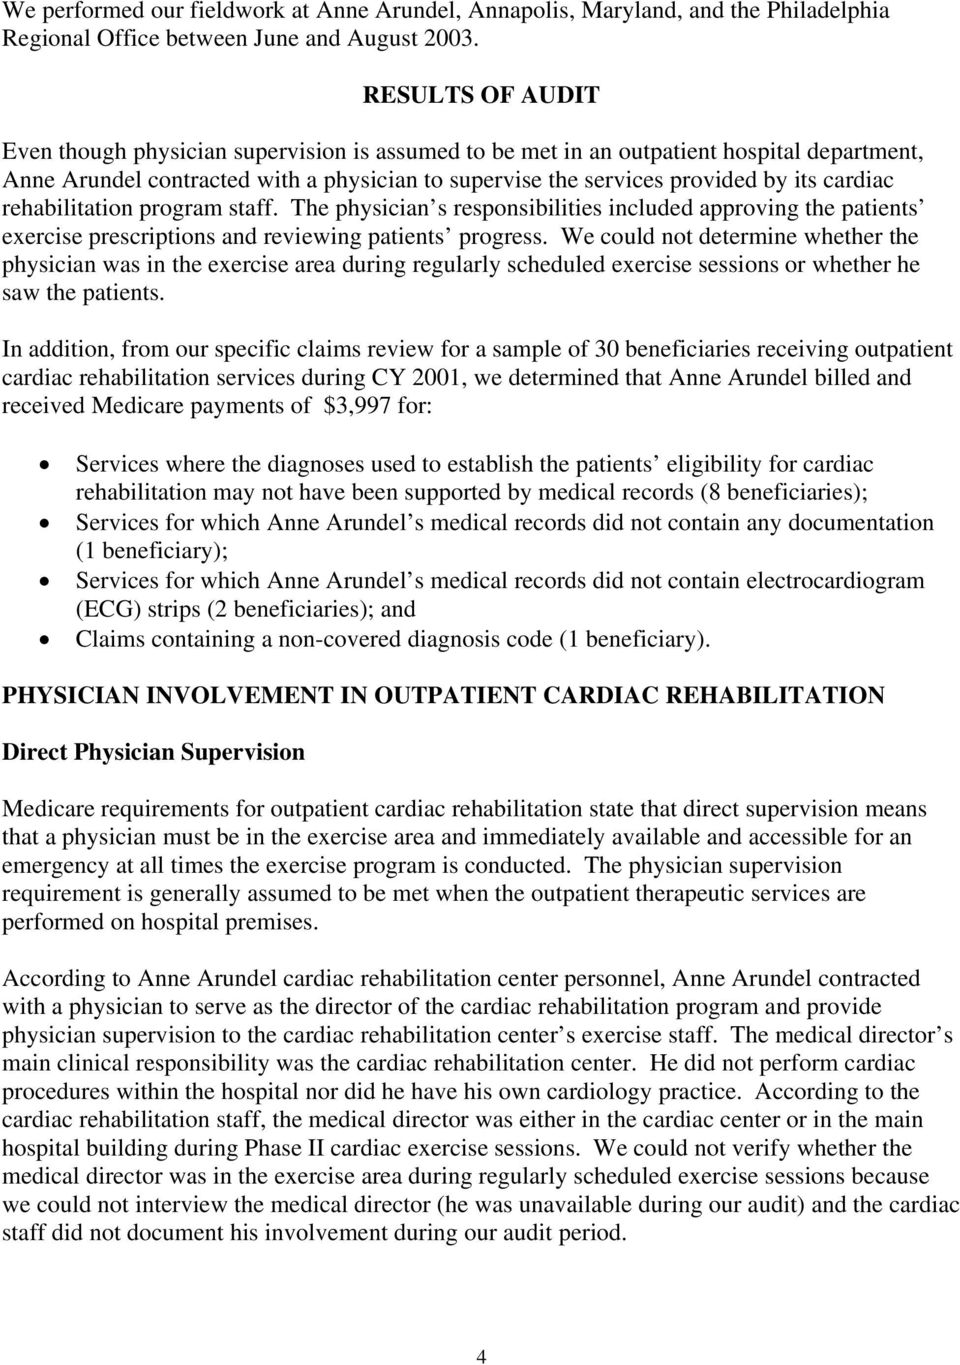 cardiac rehabilitation program staff. The physician s responsibilities included approving the patients exercise prescriptions and reviewing patients progress.